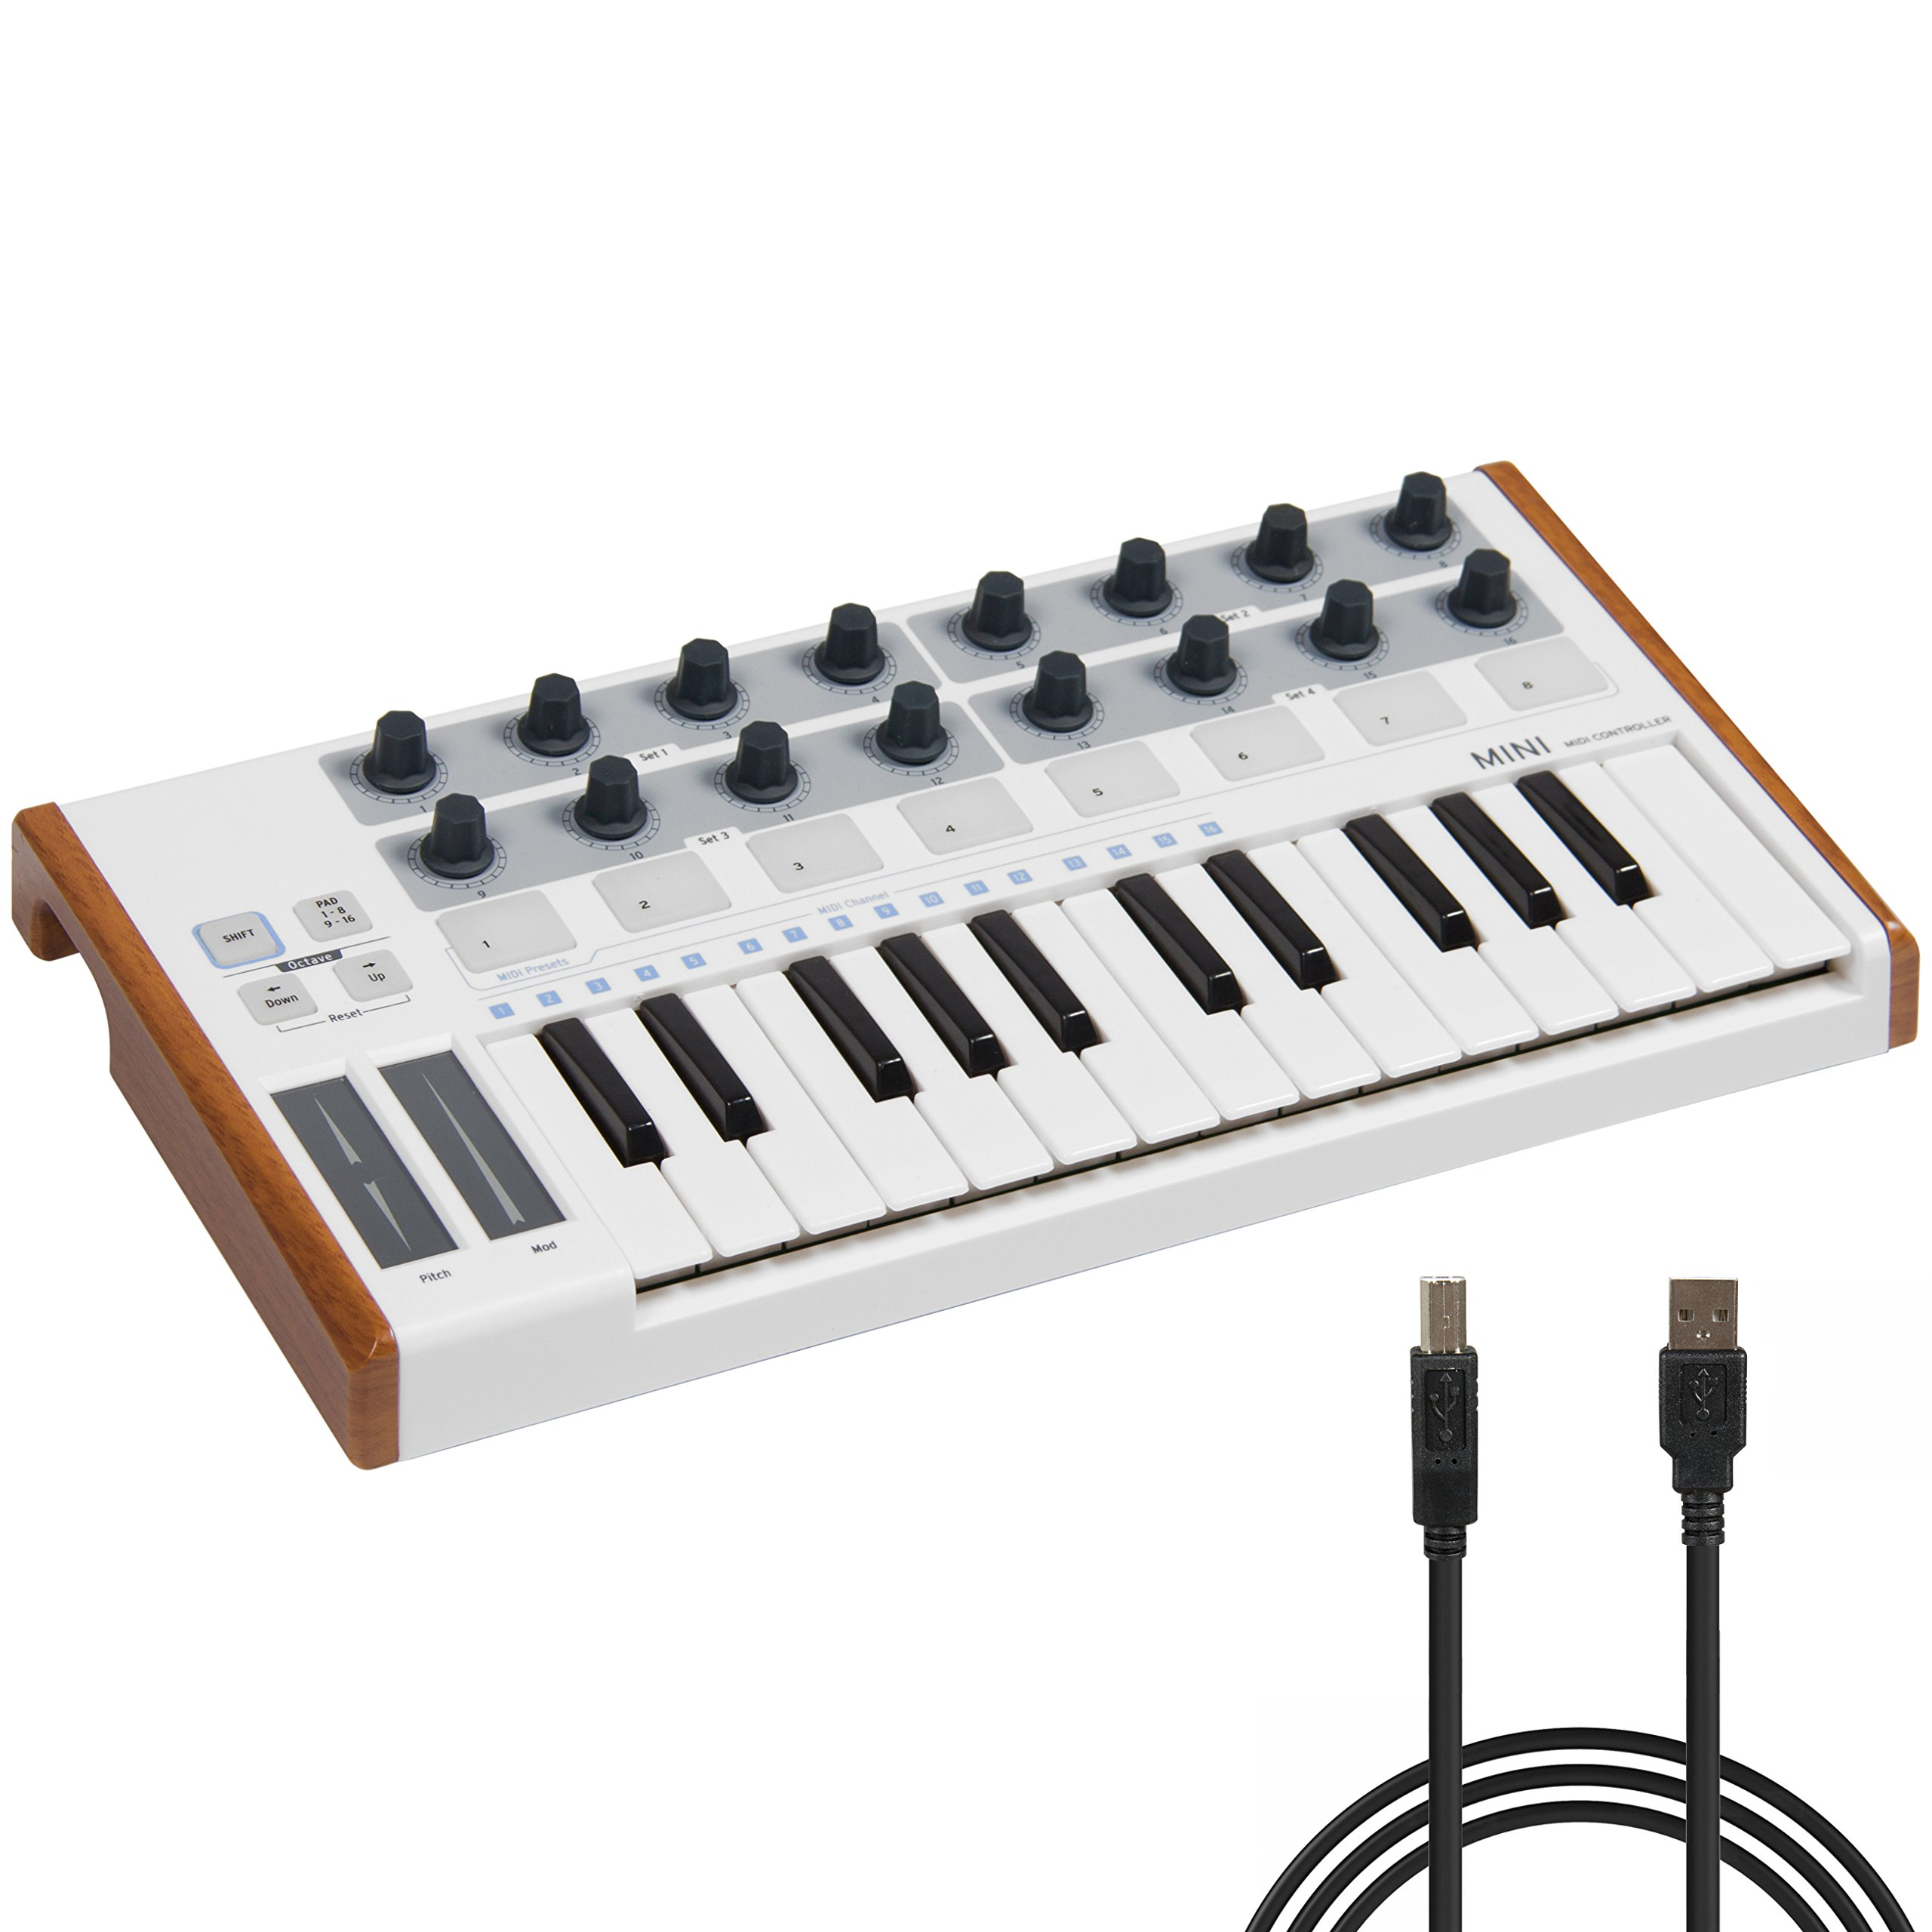 Best Choice Products 25 Key USB MIDI Controller Keyboard Drum Pad by Best Choice Products